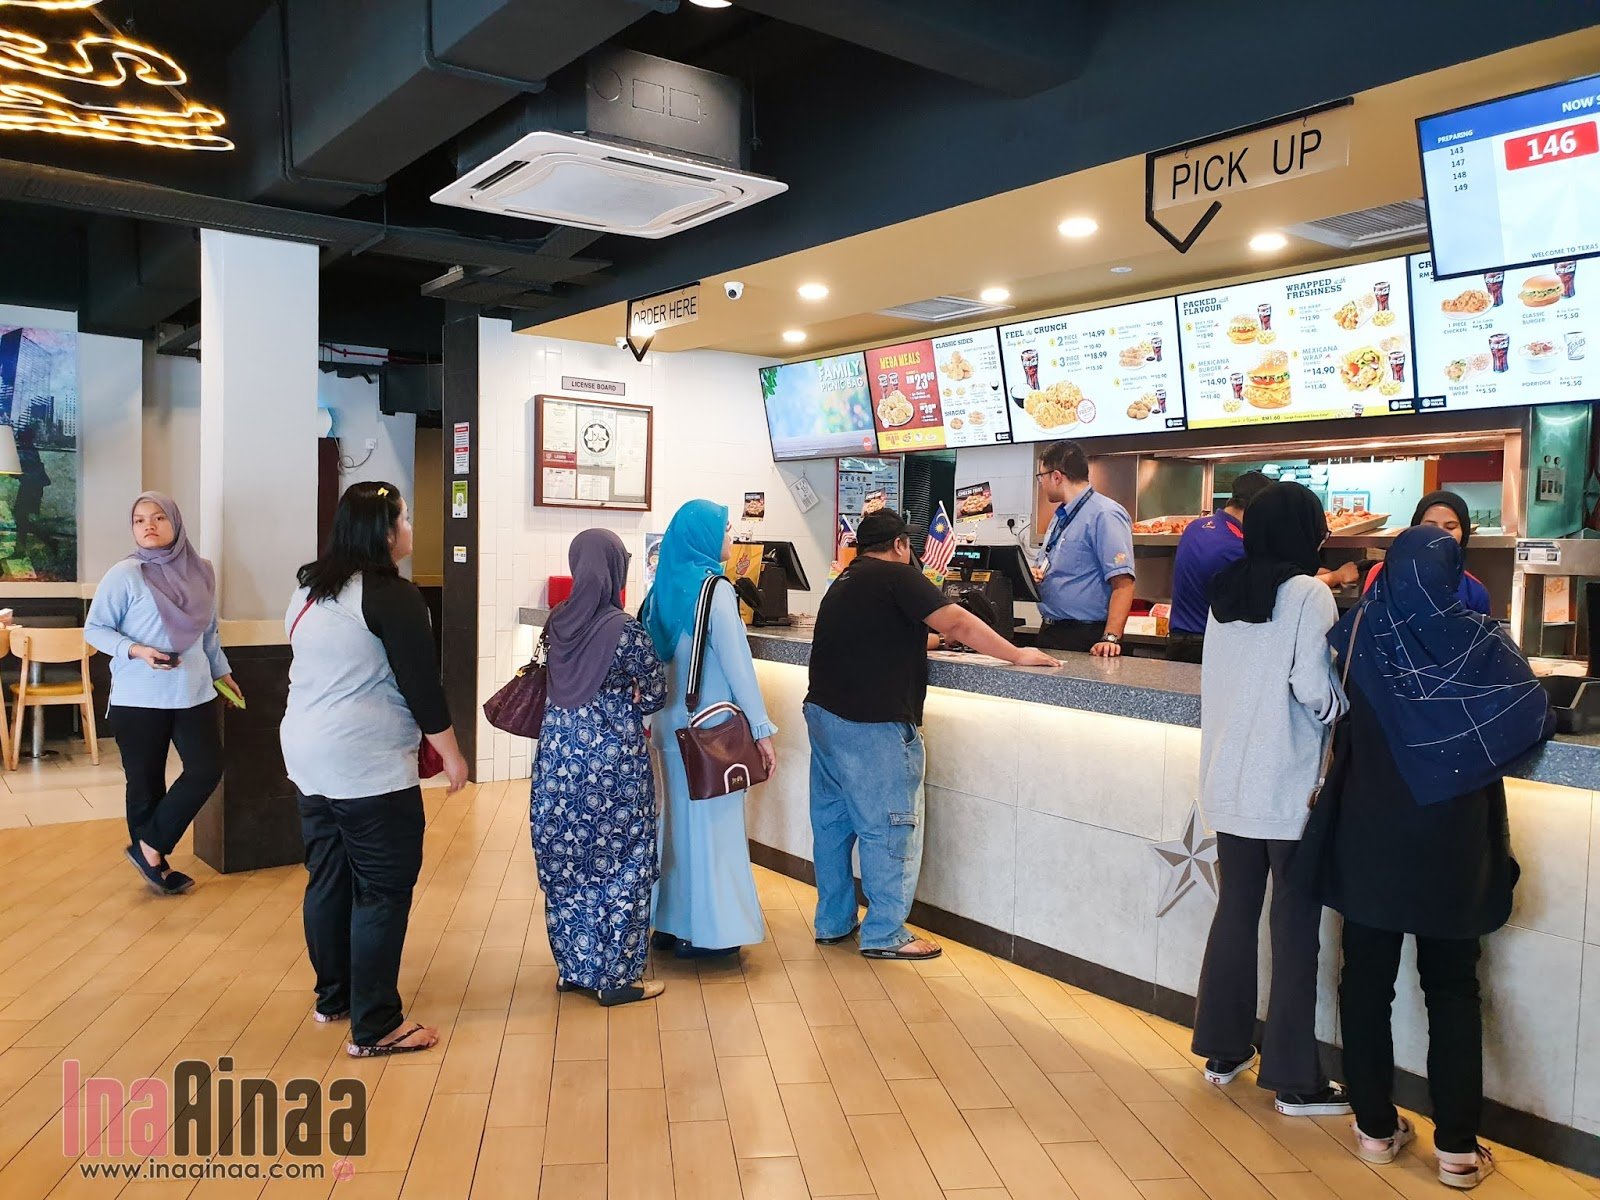 TEXAS CHICKEN MERDEKA DEALS- Hak Milik Ina Ainaa